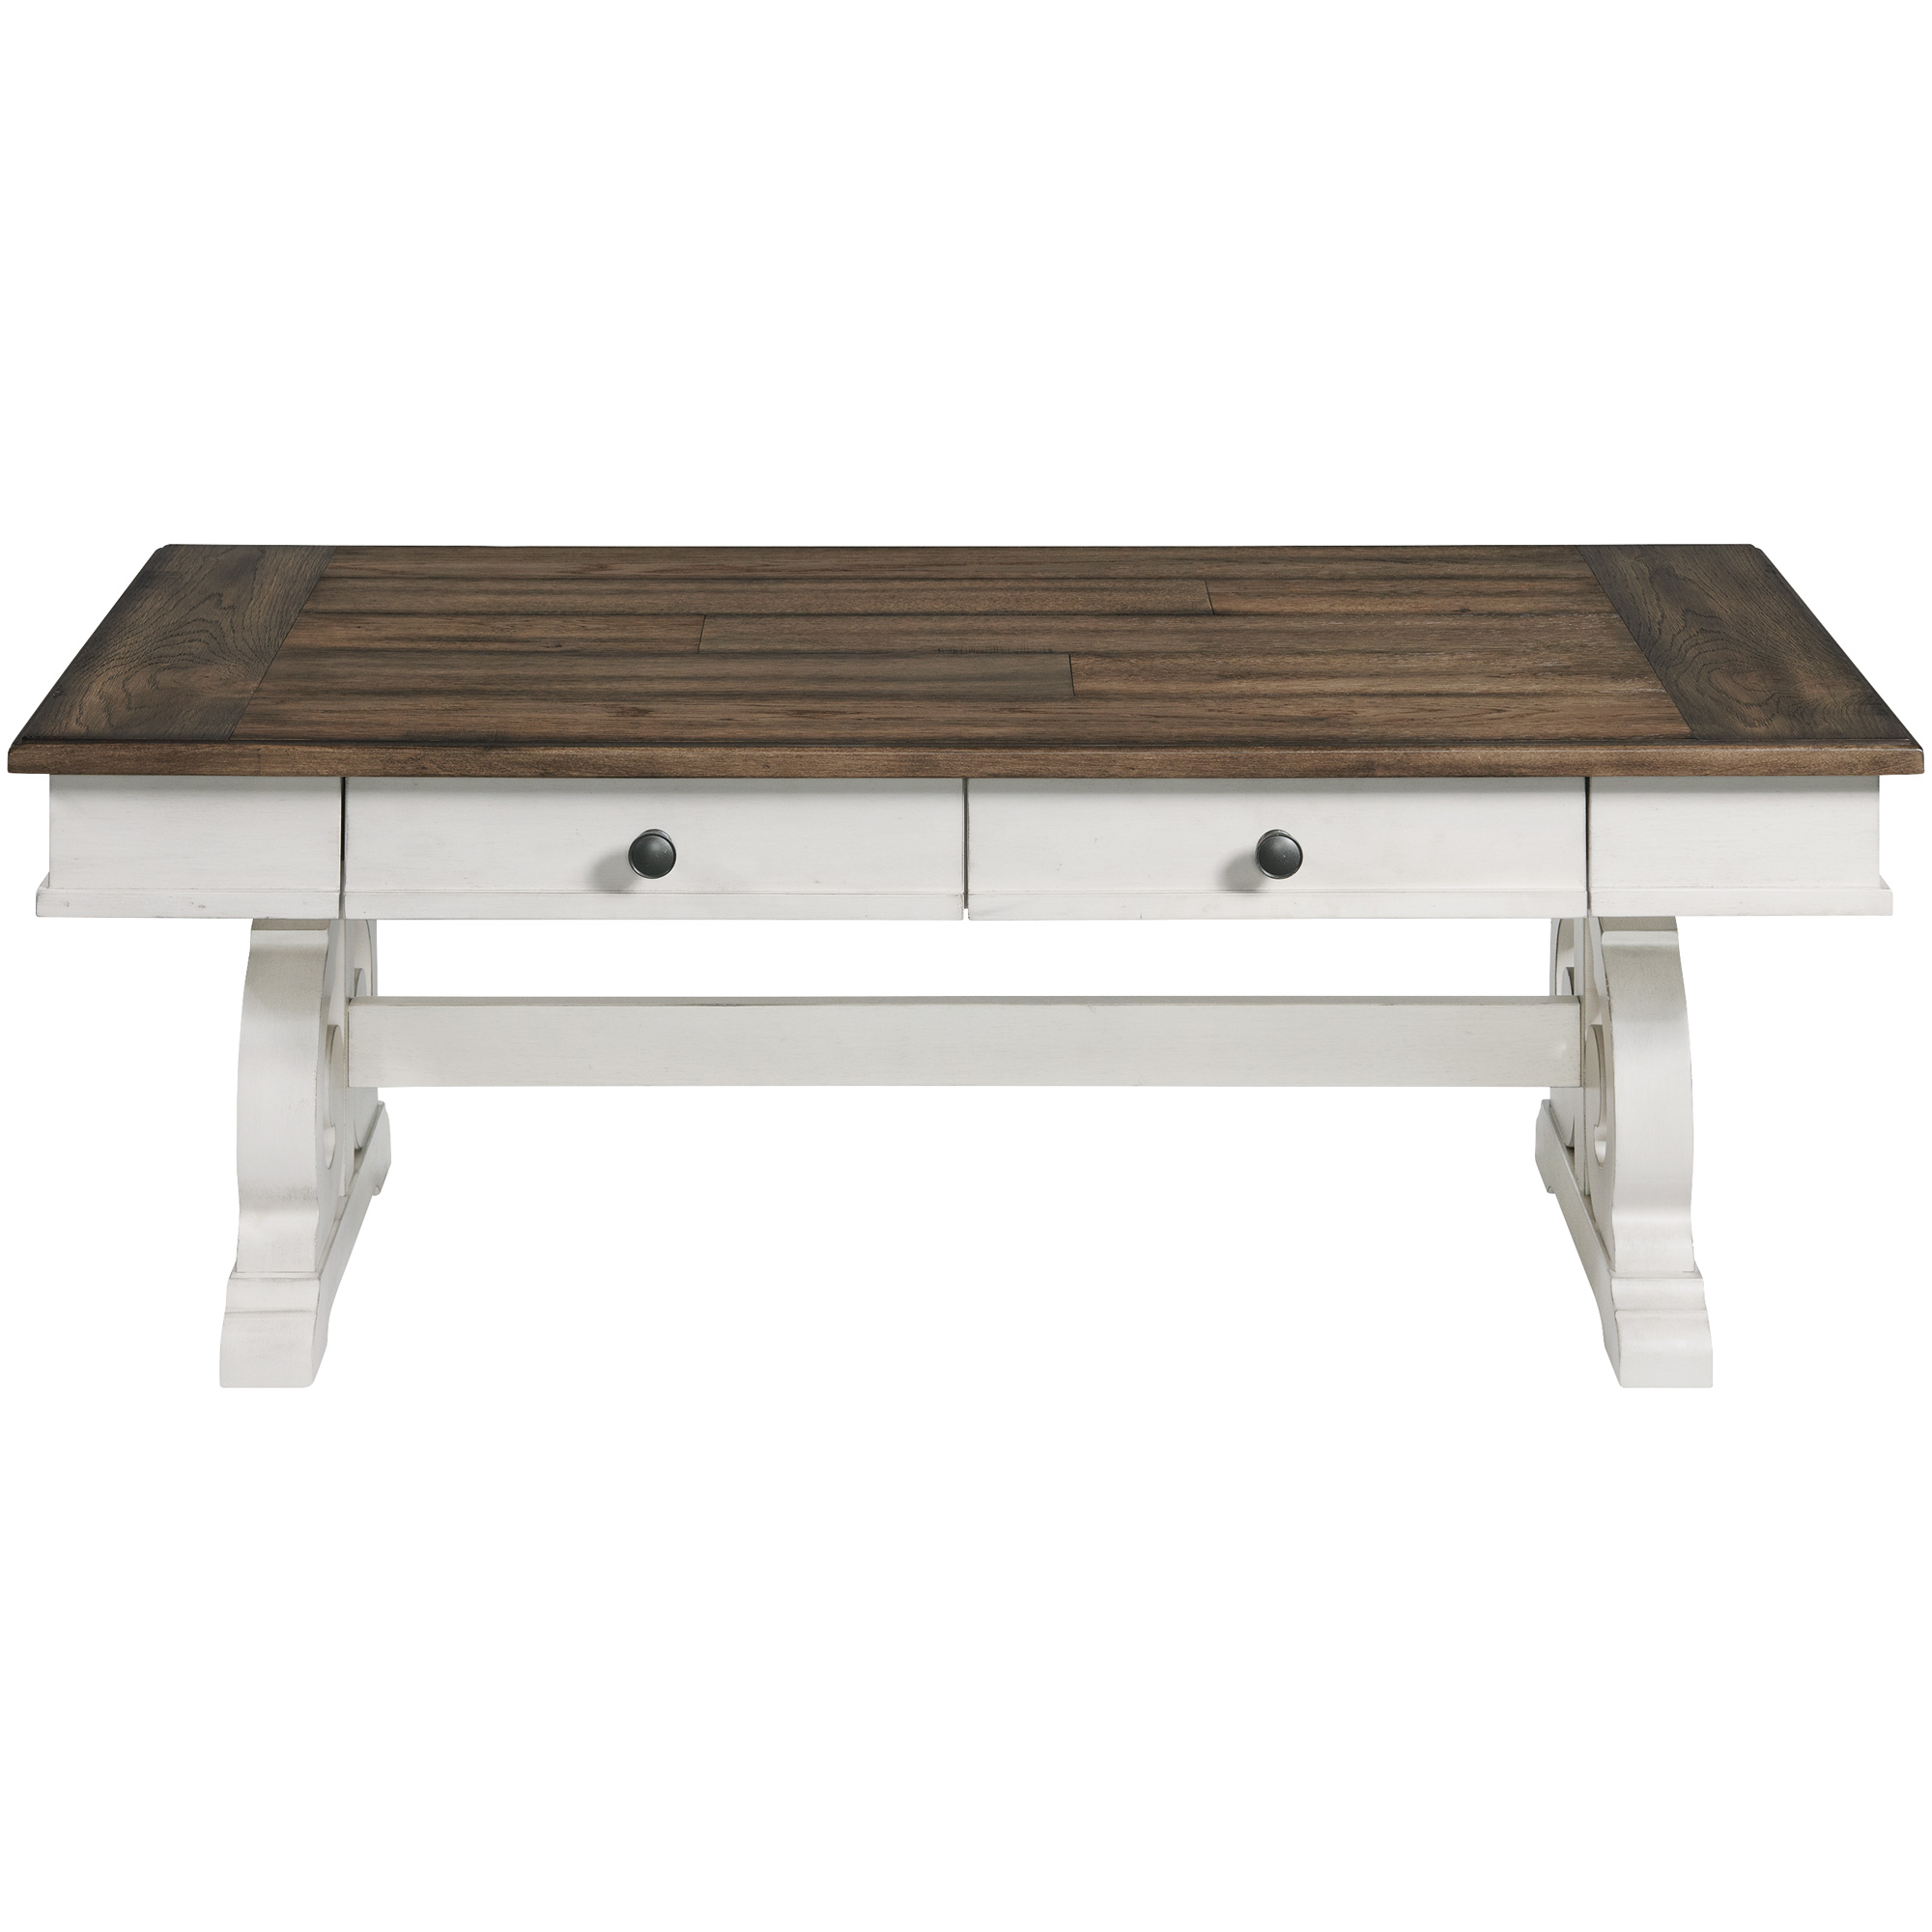 Intercon | Drake Rustic White and Stone Coffee Table